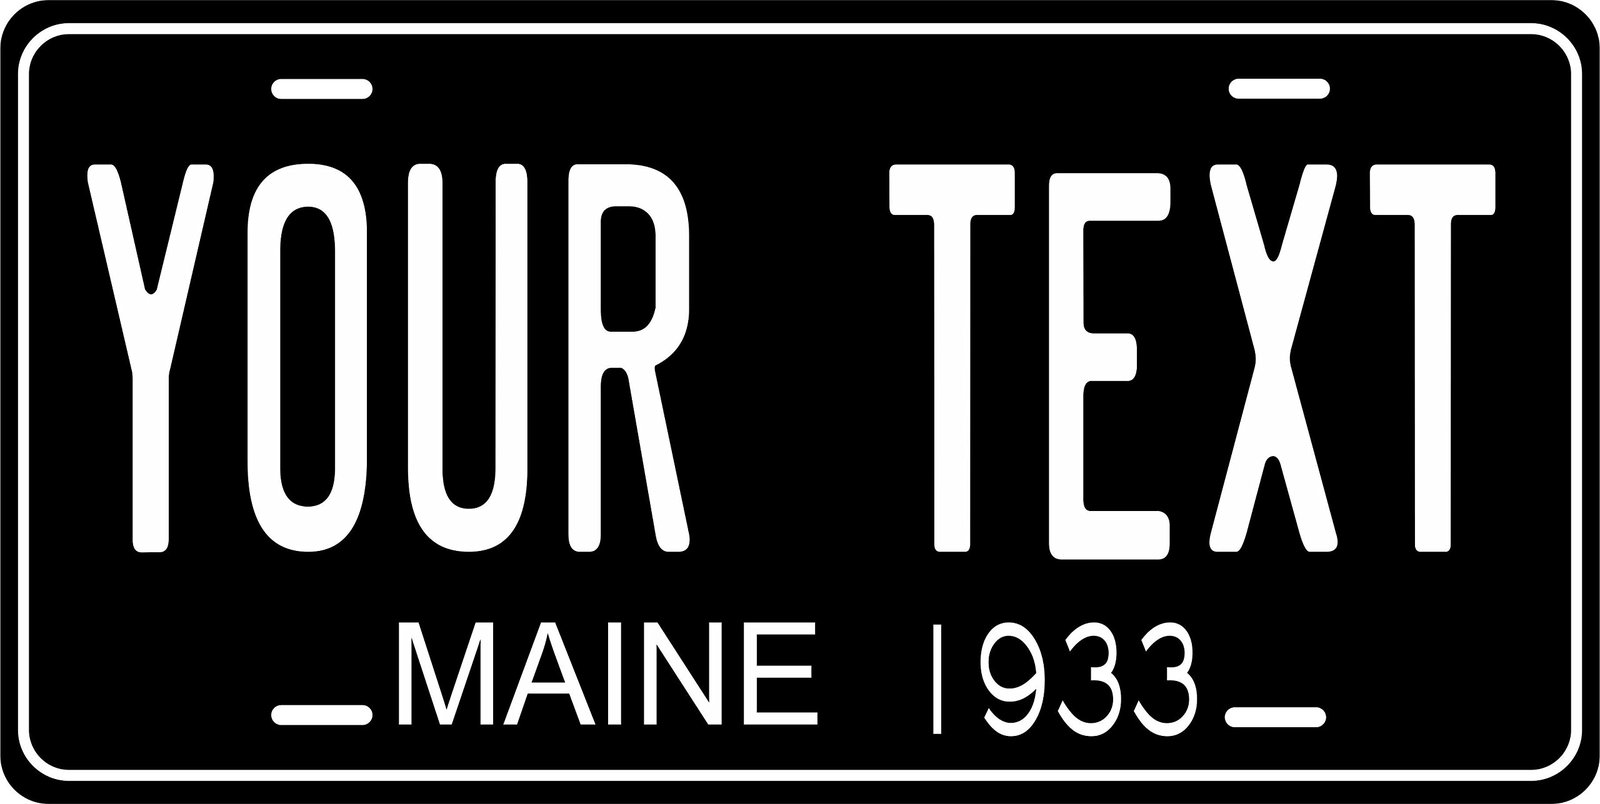 Maine 1933 Personalized Tag Vehicle Car Auto License Plate